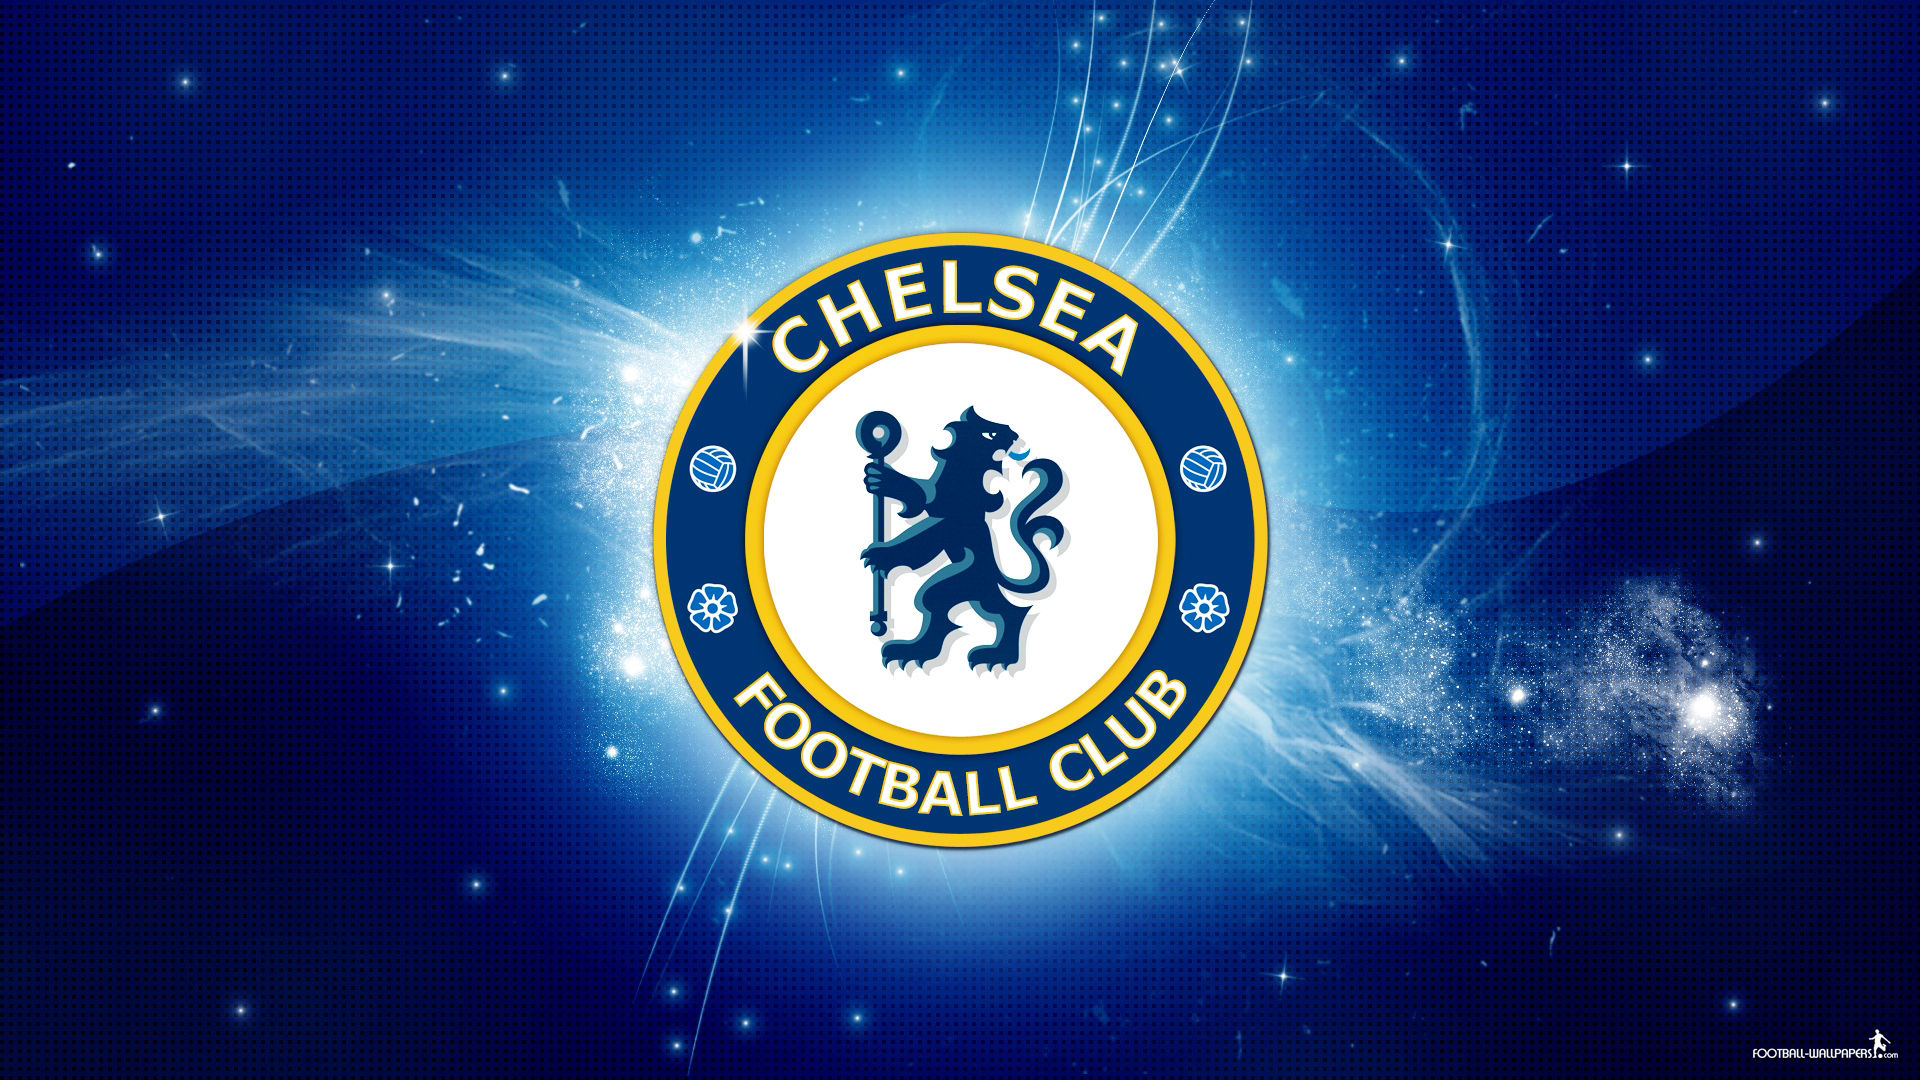 Chelsea Fc Cool Wallpaper Wallpapers Players Teams Leagues 1920x1080